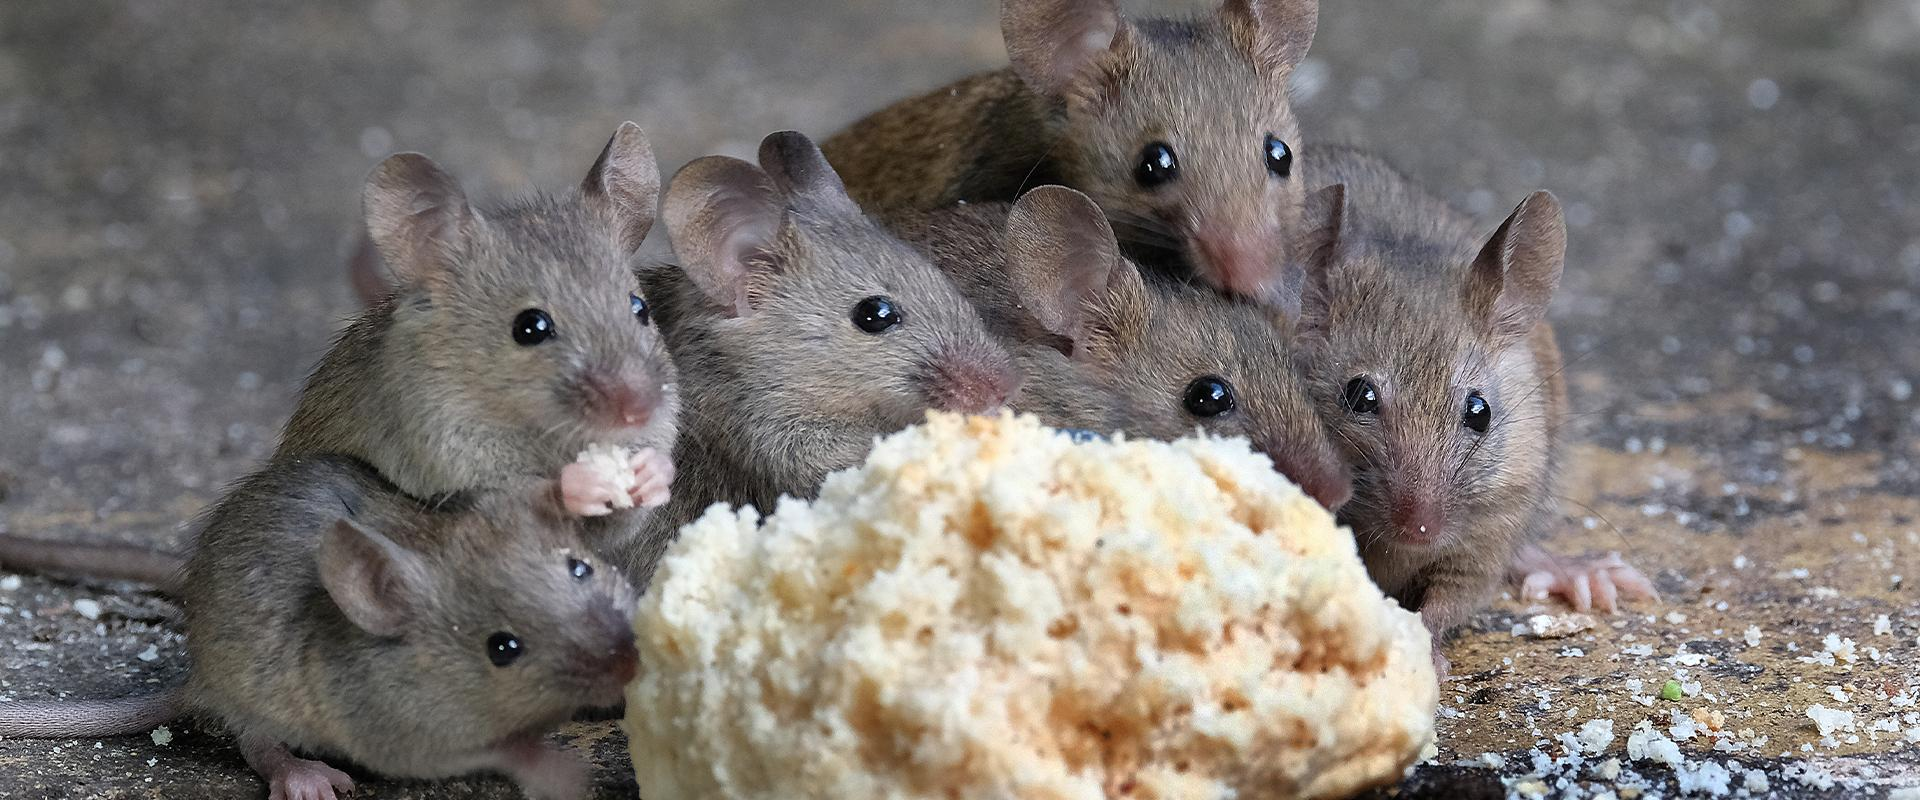 mice eating a biscuit in idaho falls